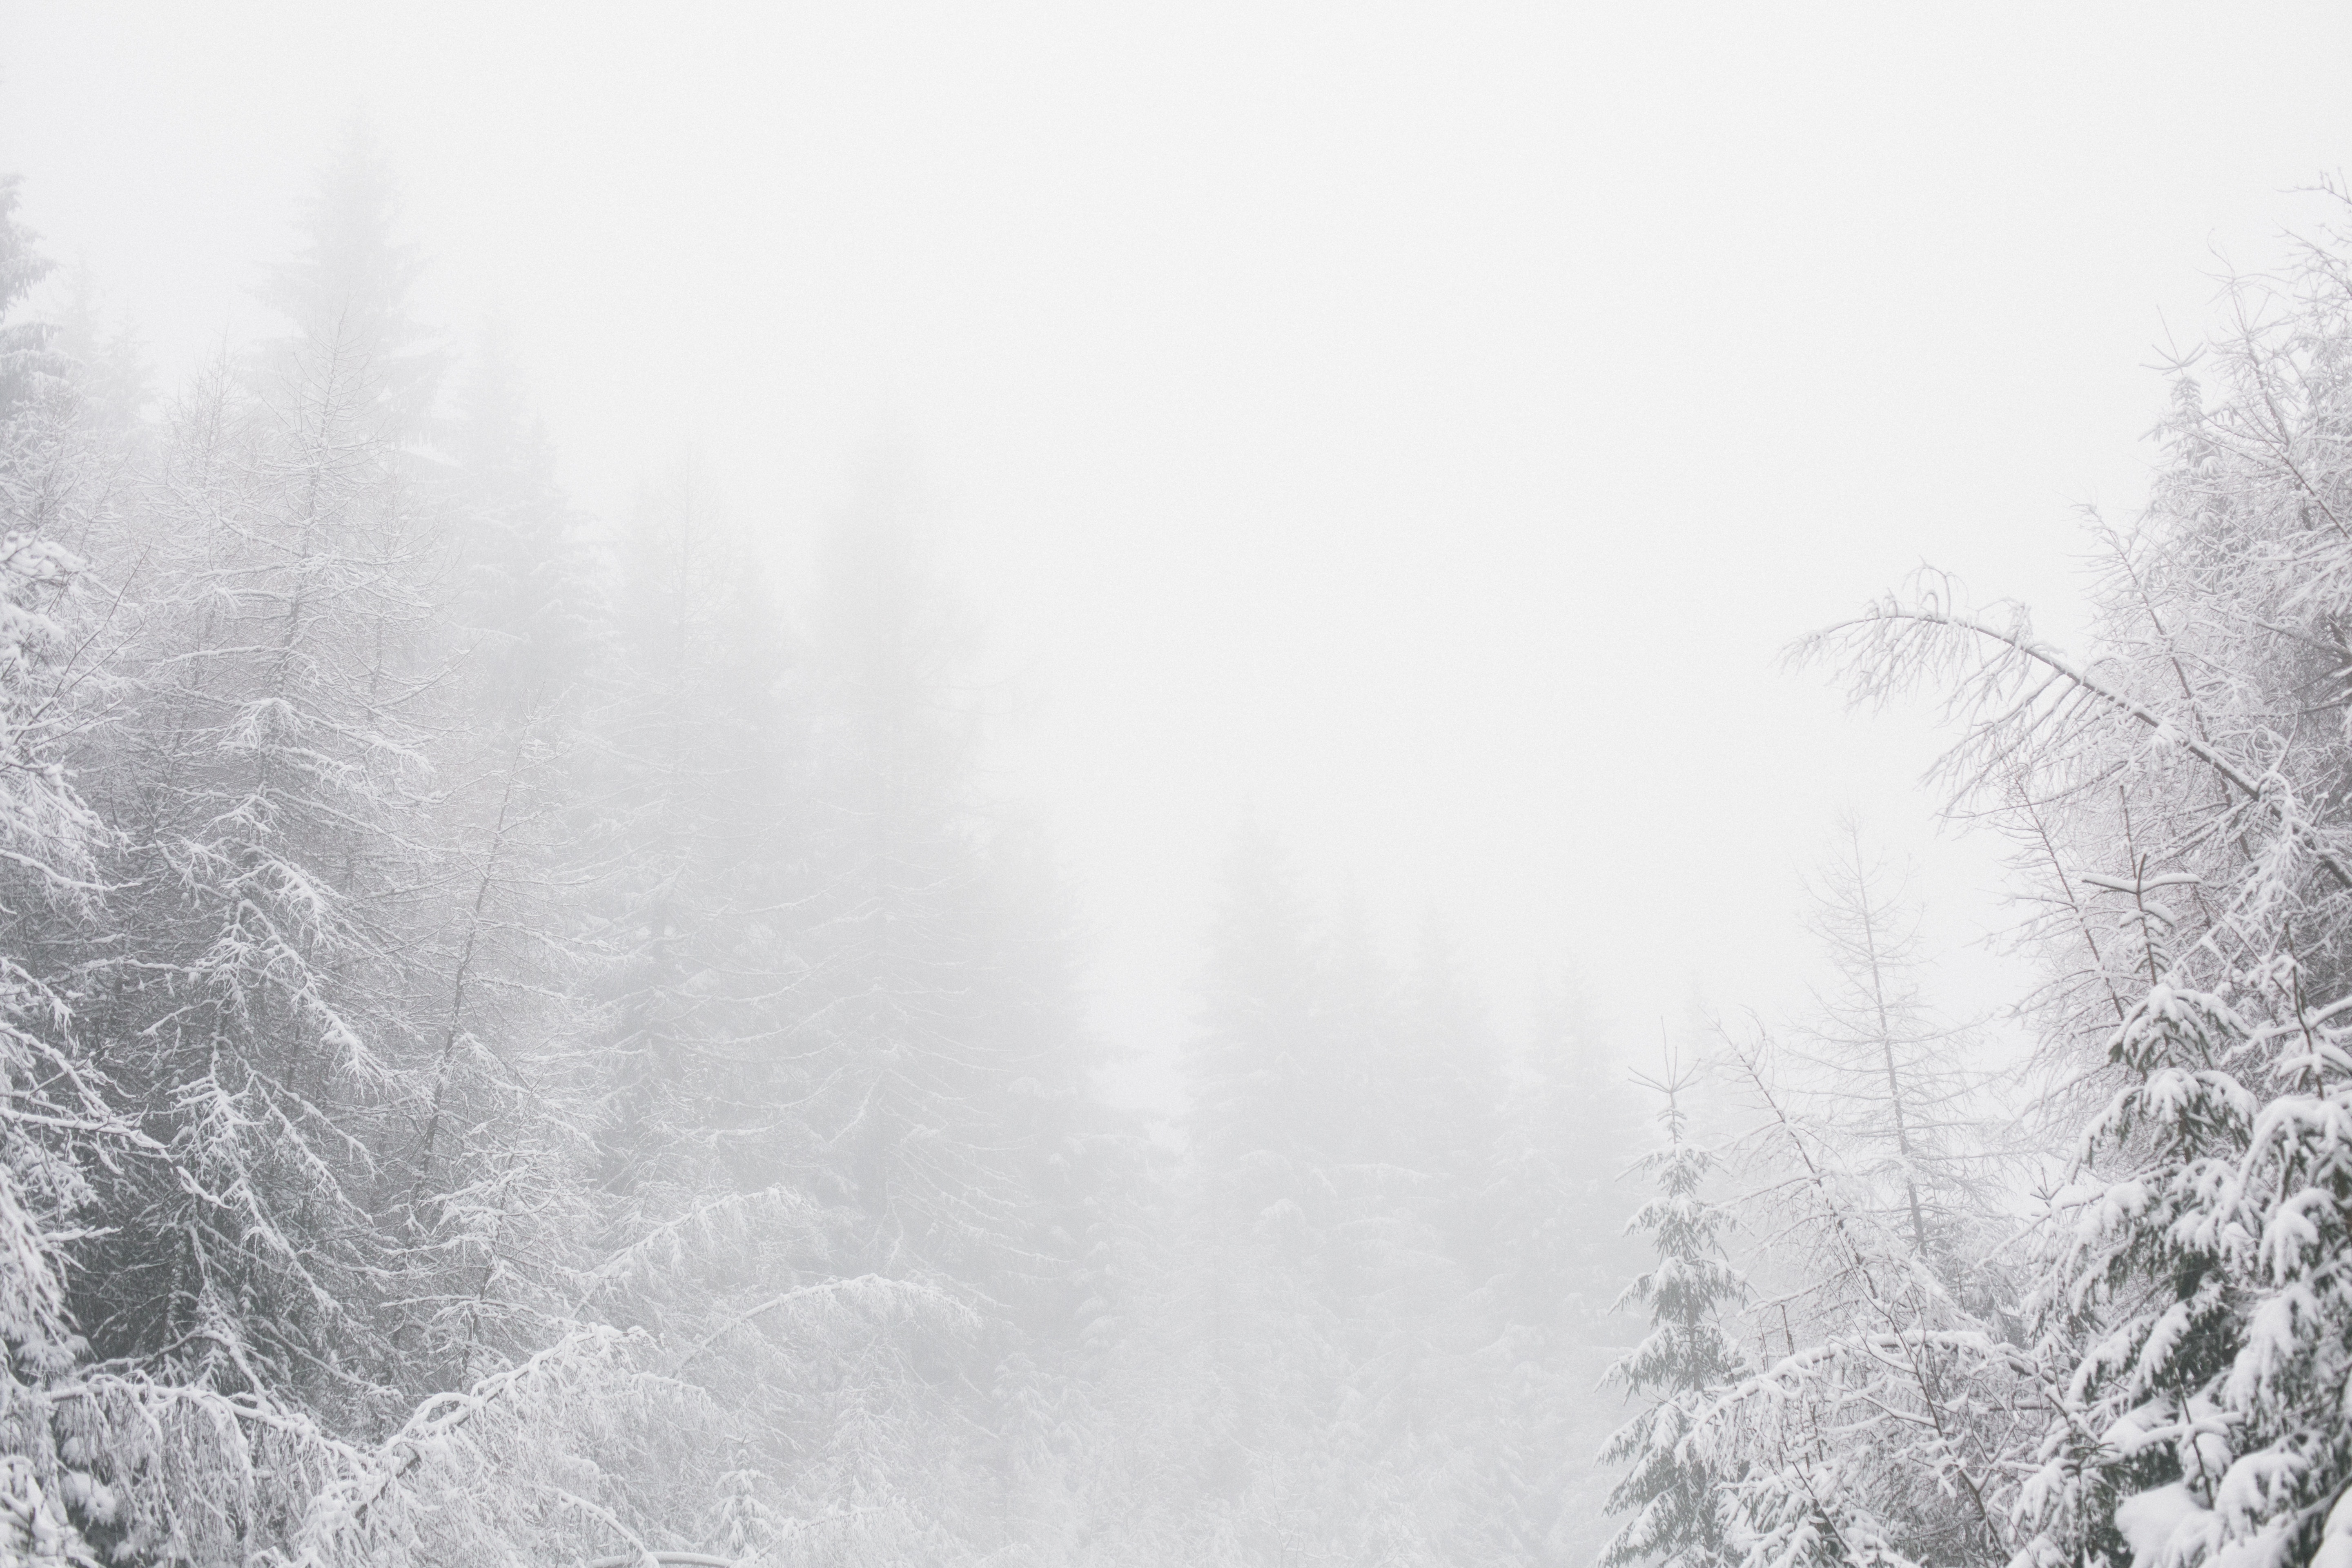 White Snowy Environment With Pine Trees, Cold, Scenic, Winter, Weather, HQ Photo